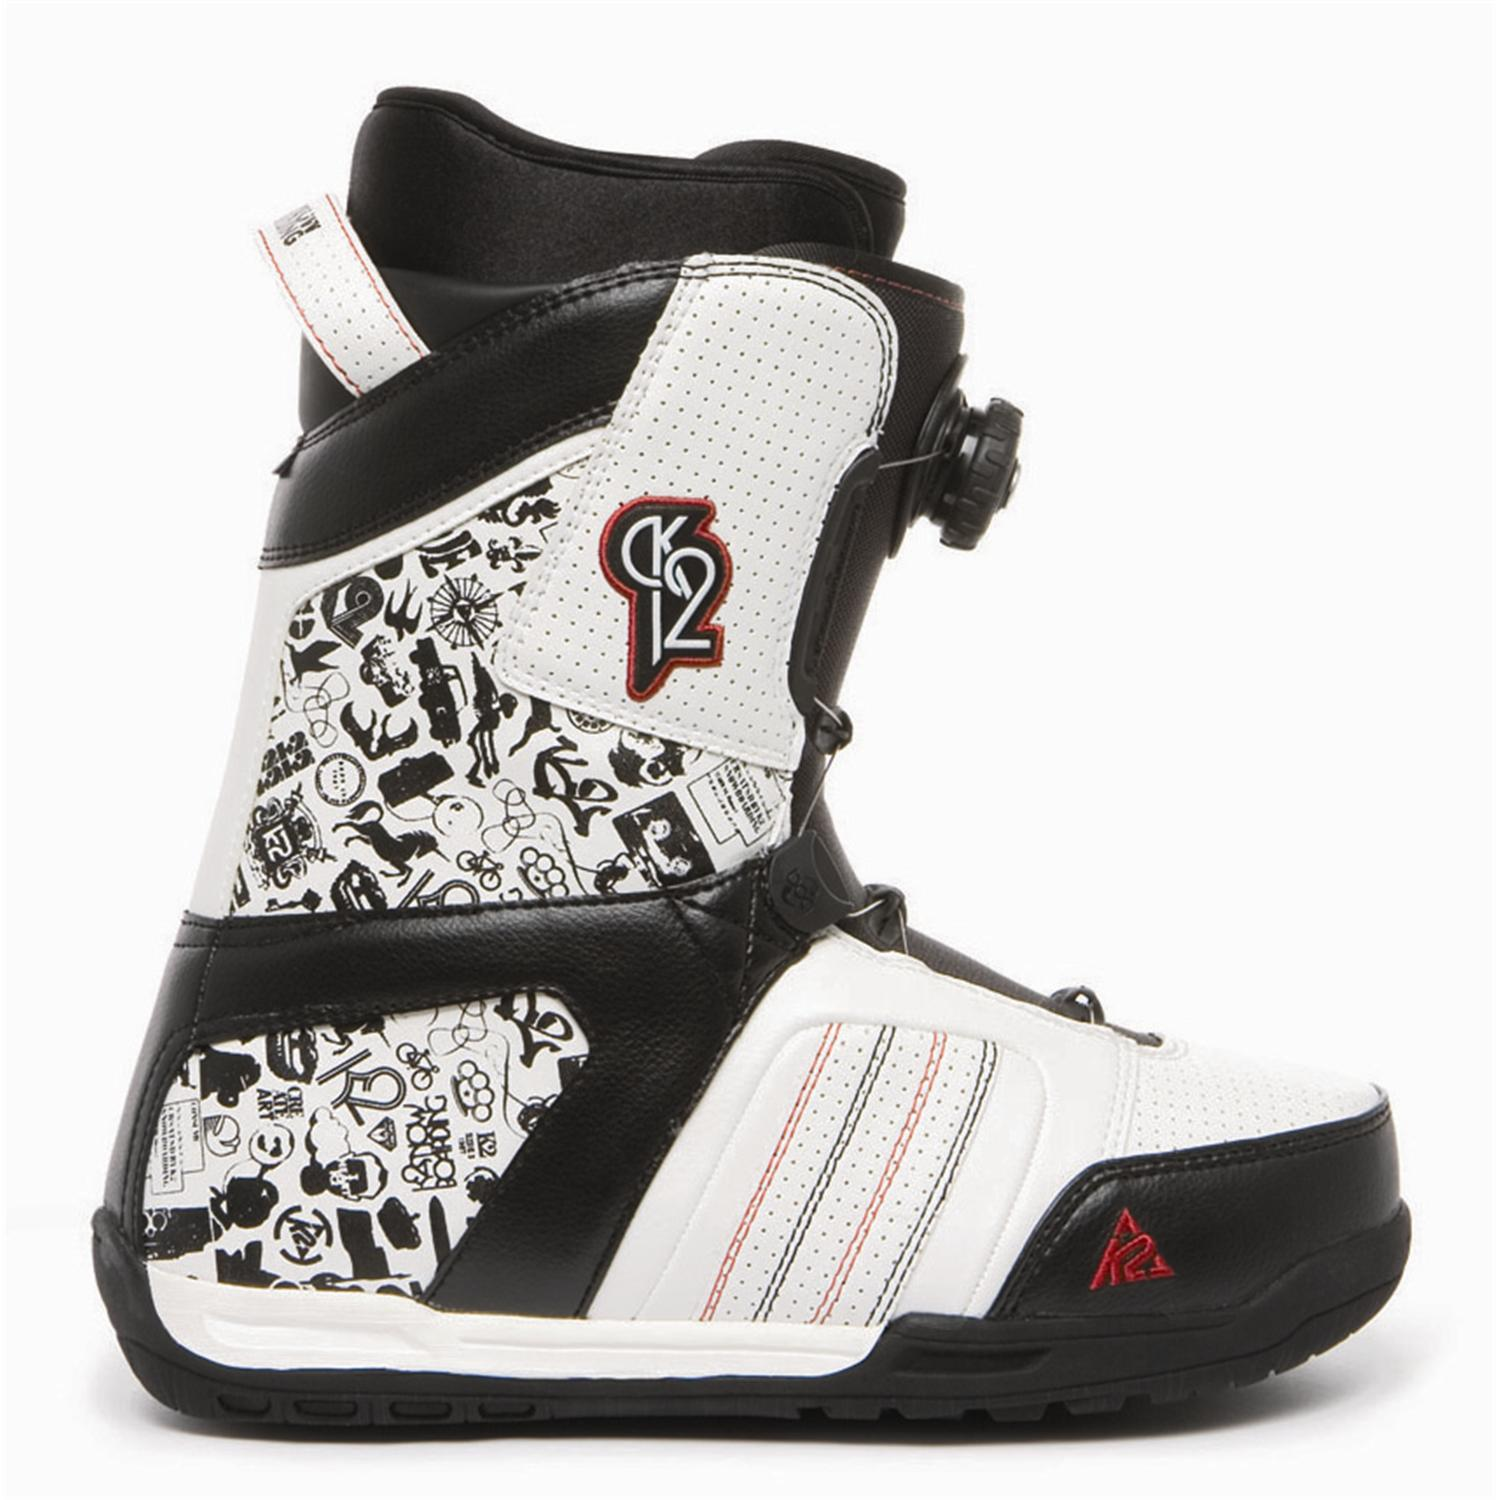 Snowboard Bank K2 Transit Boa Snowboard Boots 2009 Evo Outlet